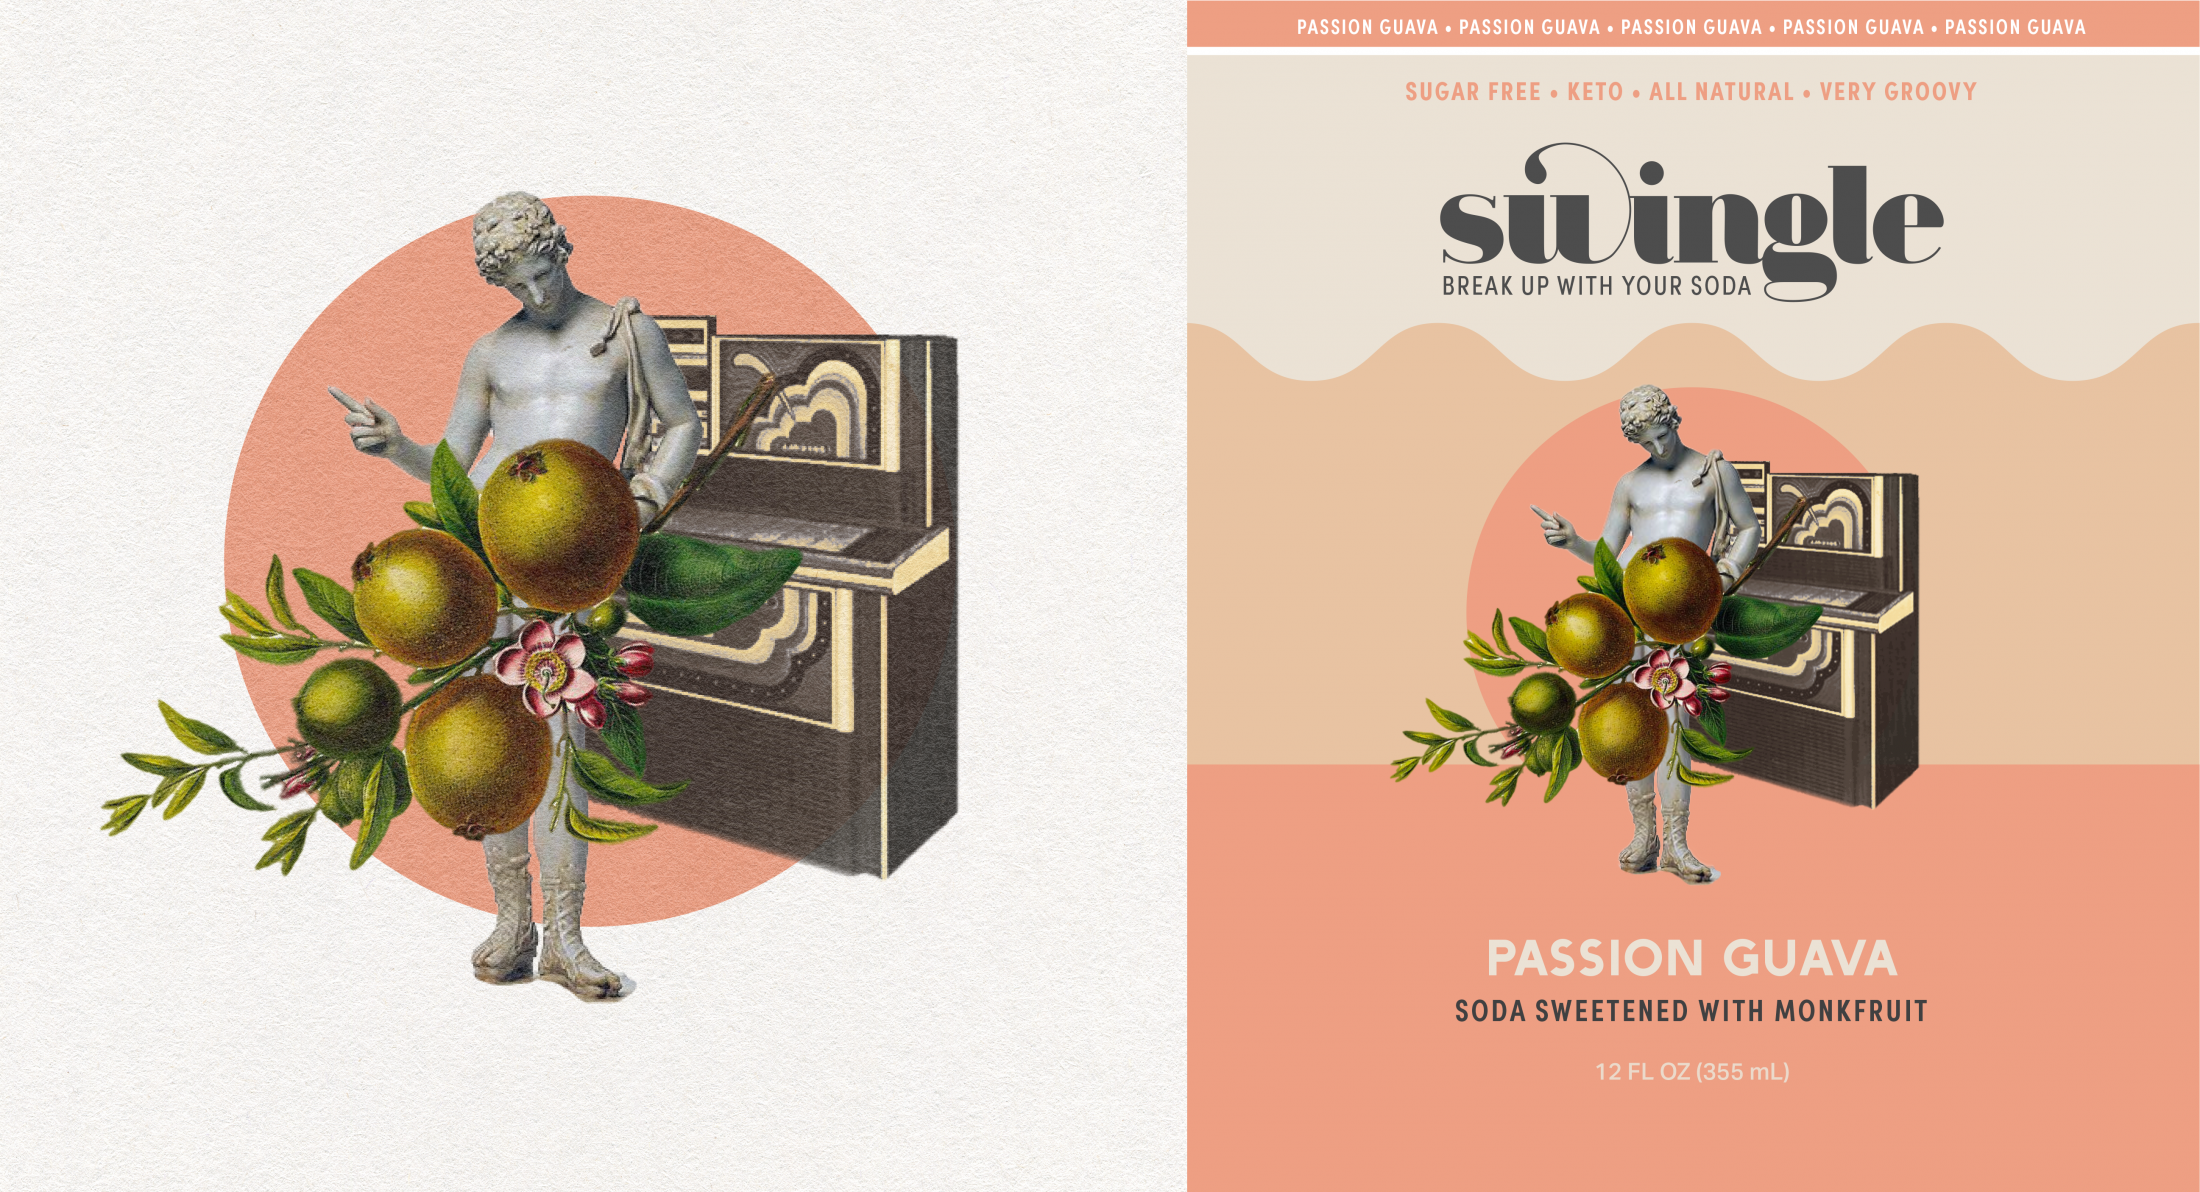 Label Art: A greek statue censored by passion fruits, collaged with a 70's jukebox and a pink circle.